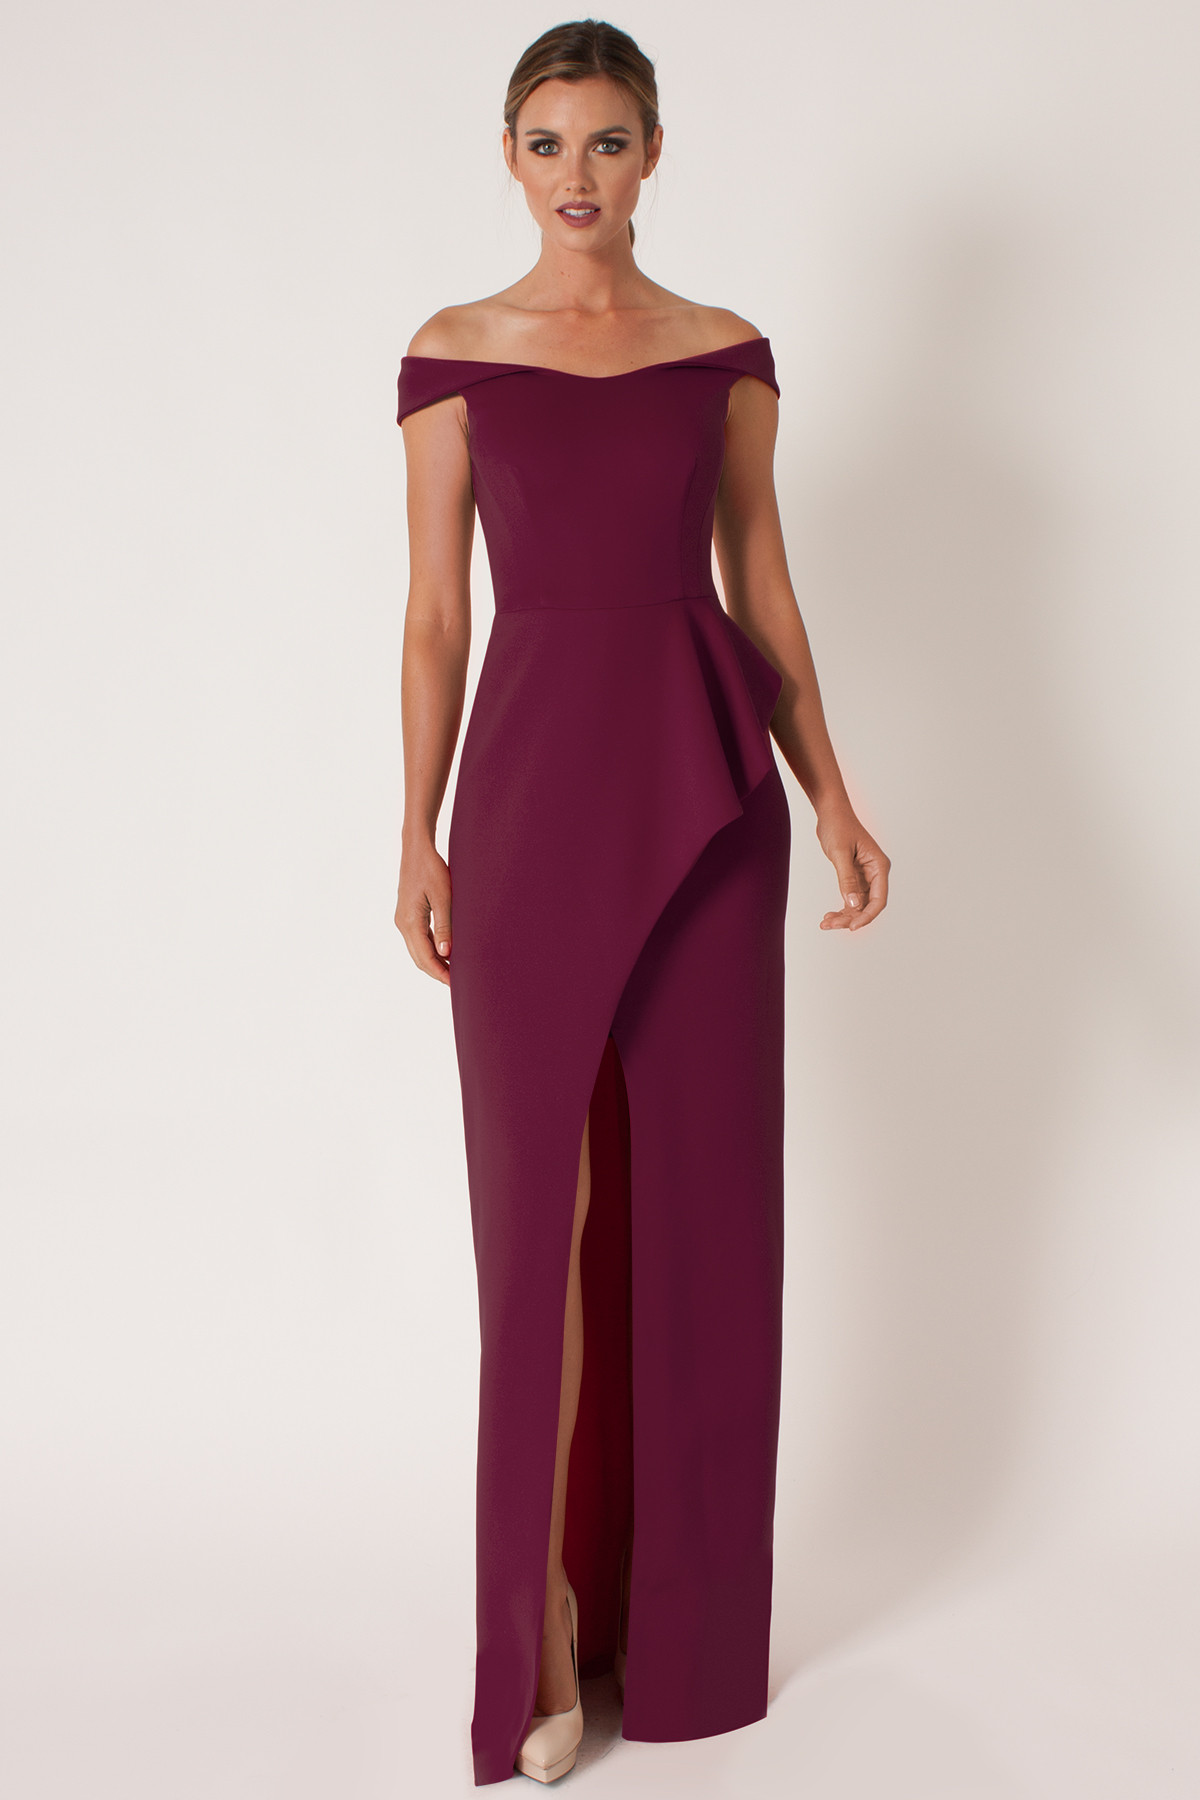 Lyst - Black Halo Padma Gown in Purple